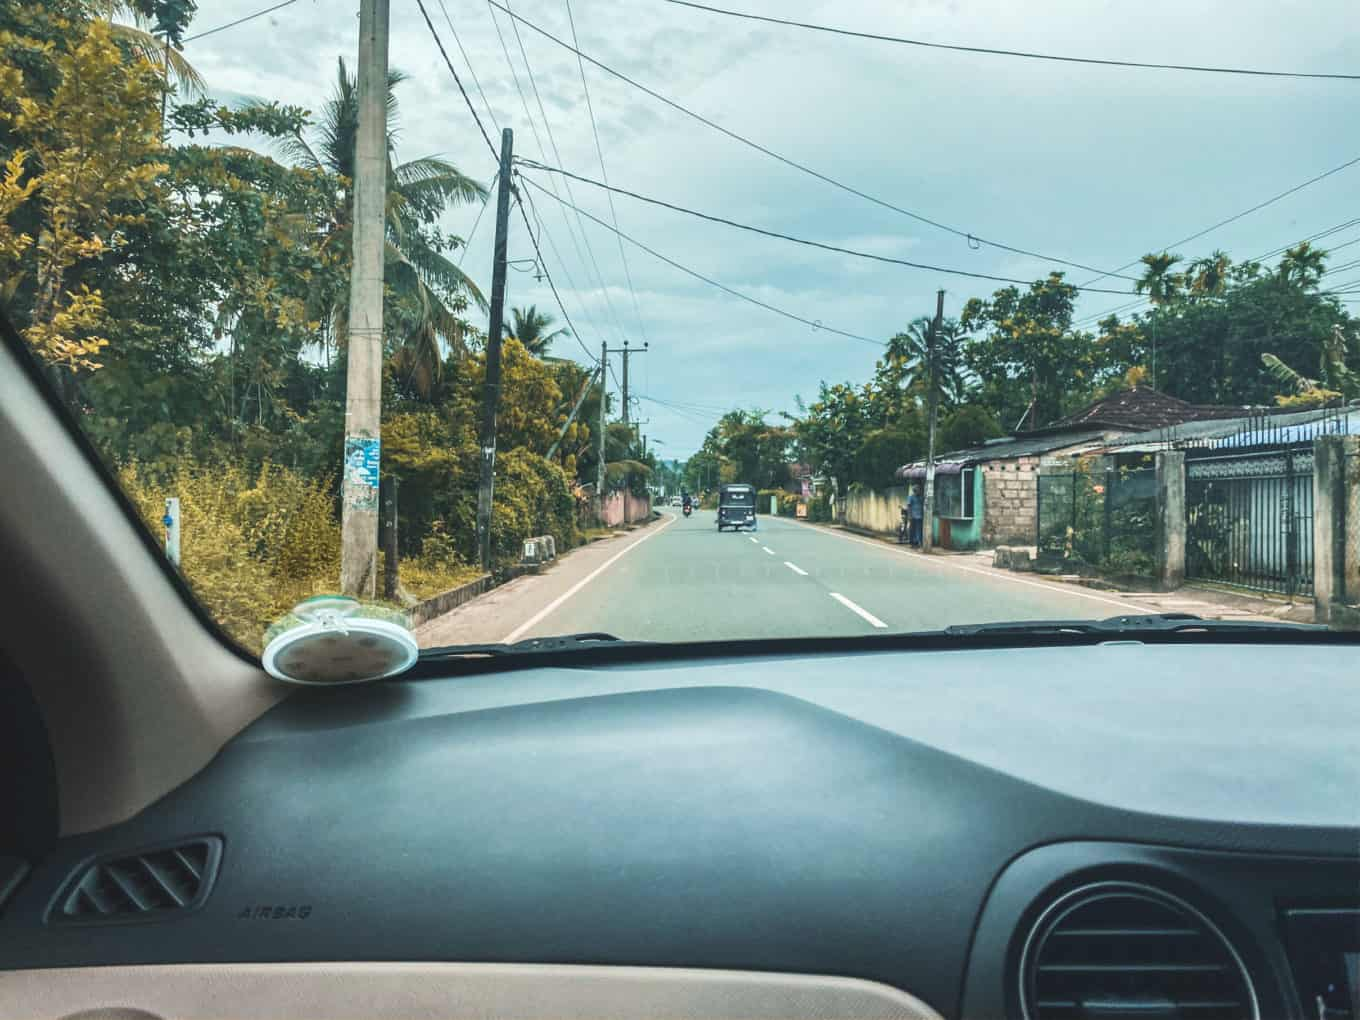 How hard it is to self-drive in Sri Lanka? Our experience driving in Sri Lanka